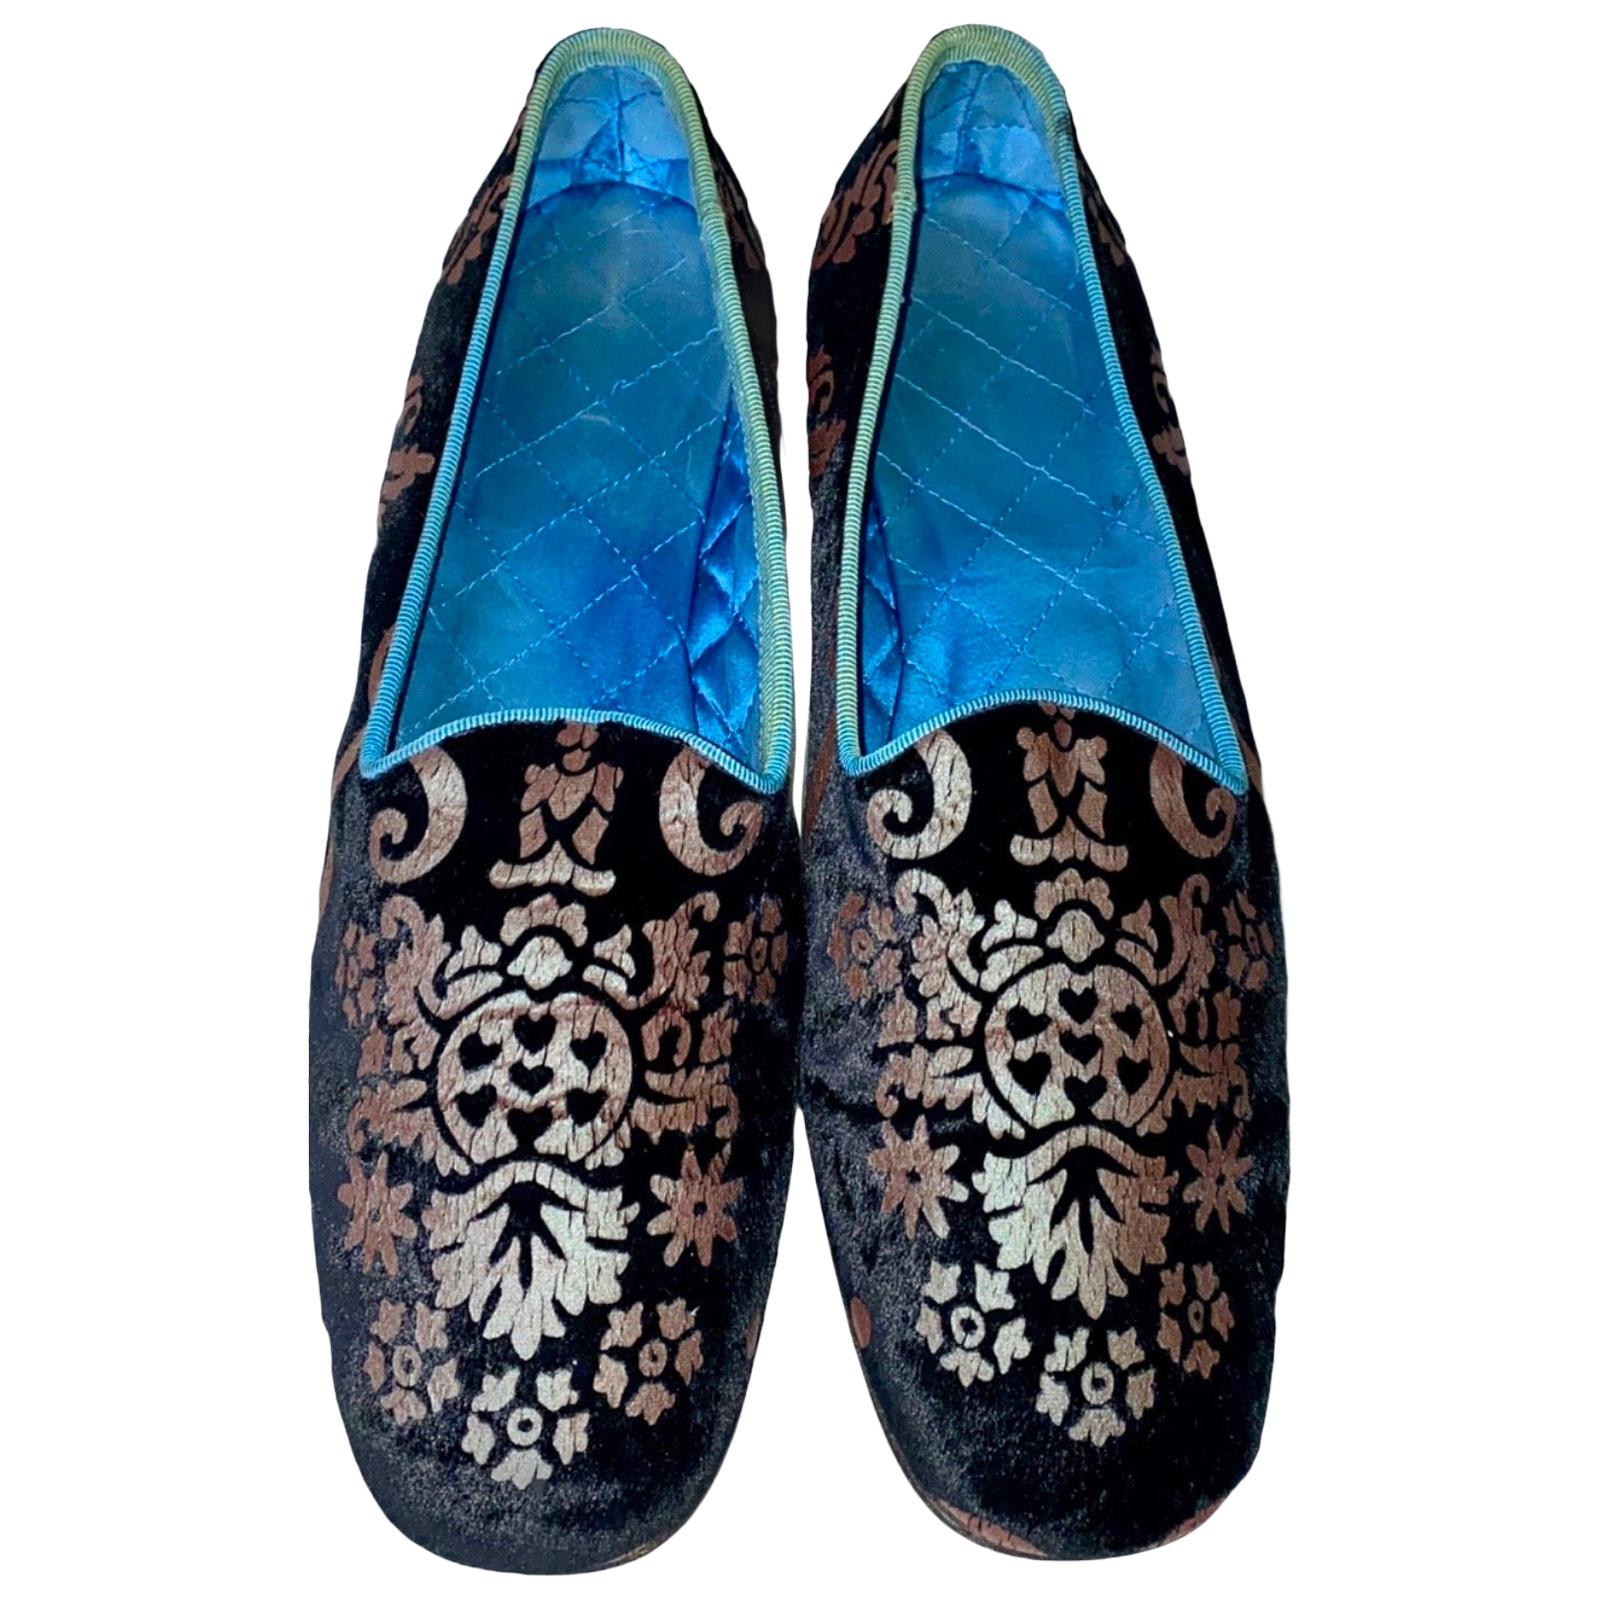 Rare Gucci by Tom Ford Velvet Brocade Print Flats Slippers Loafers